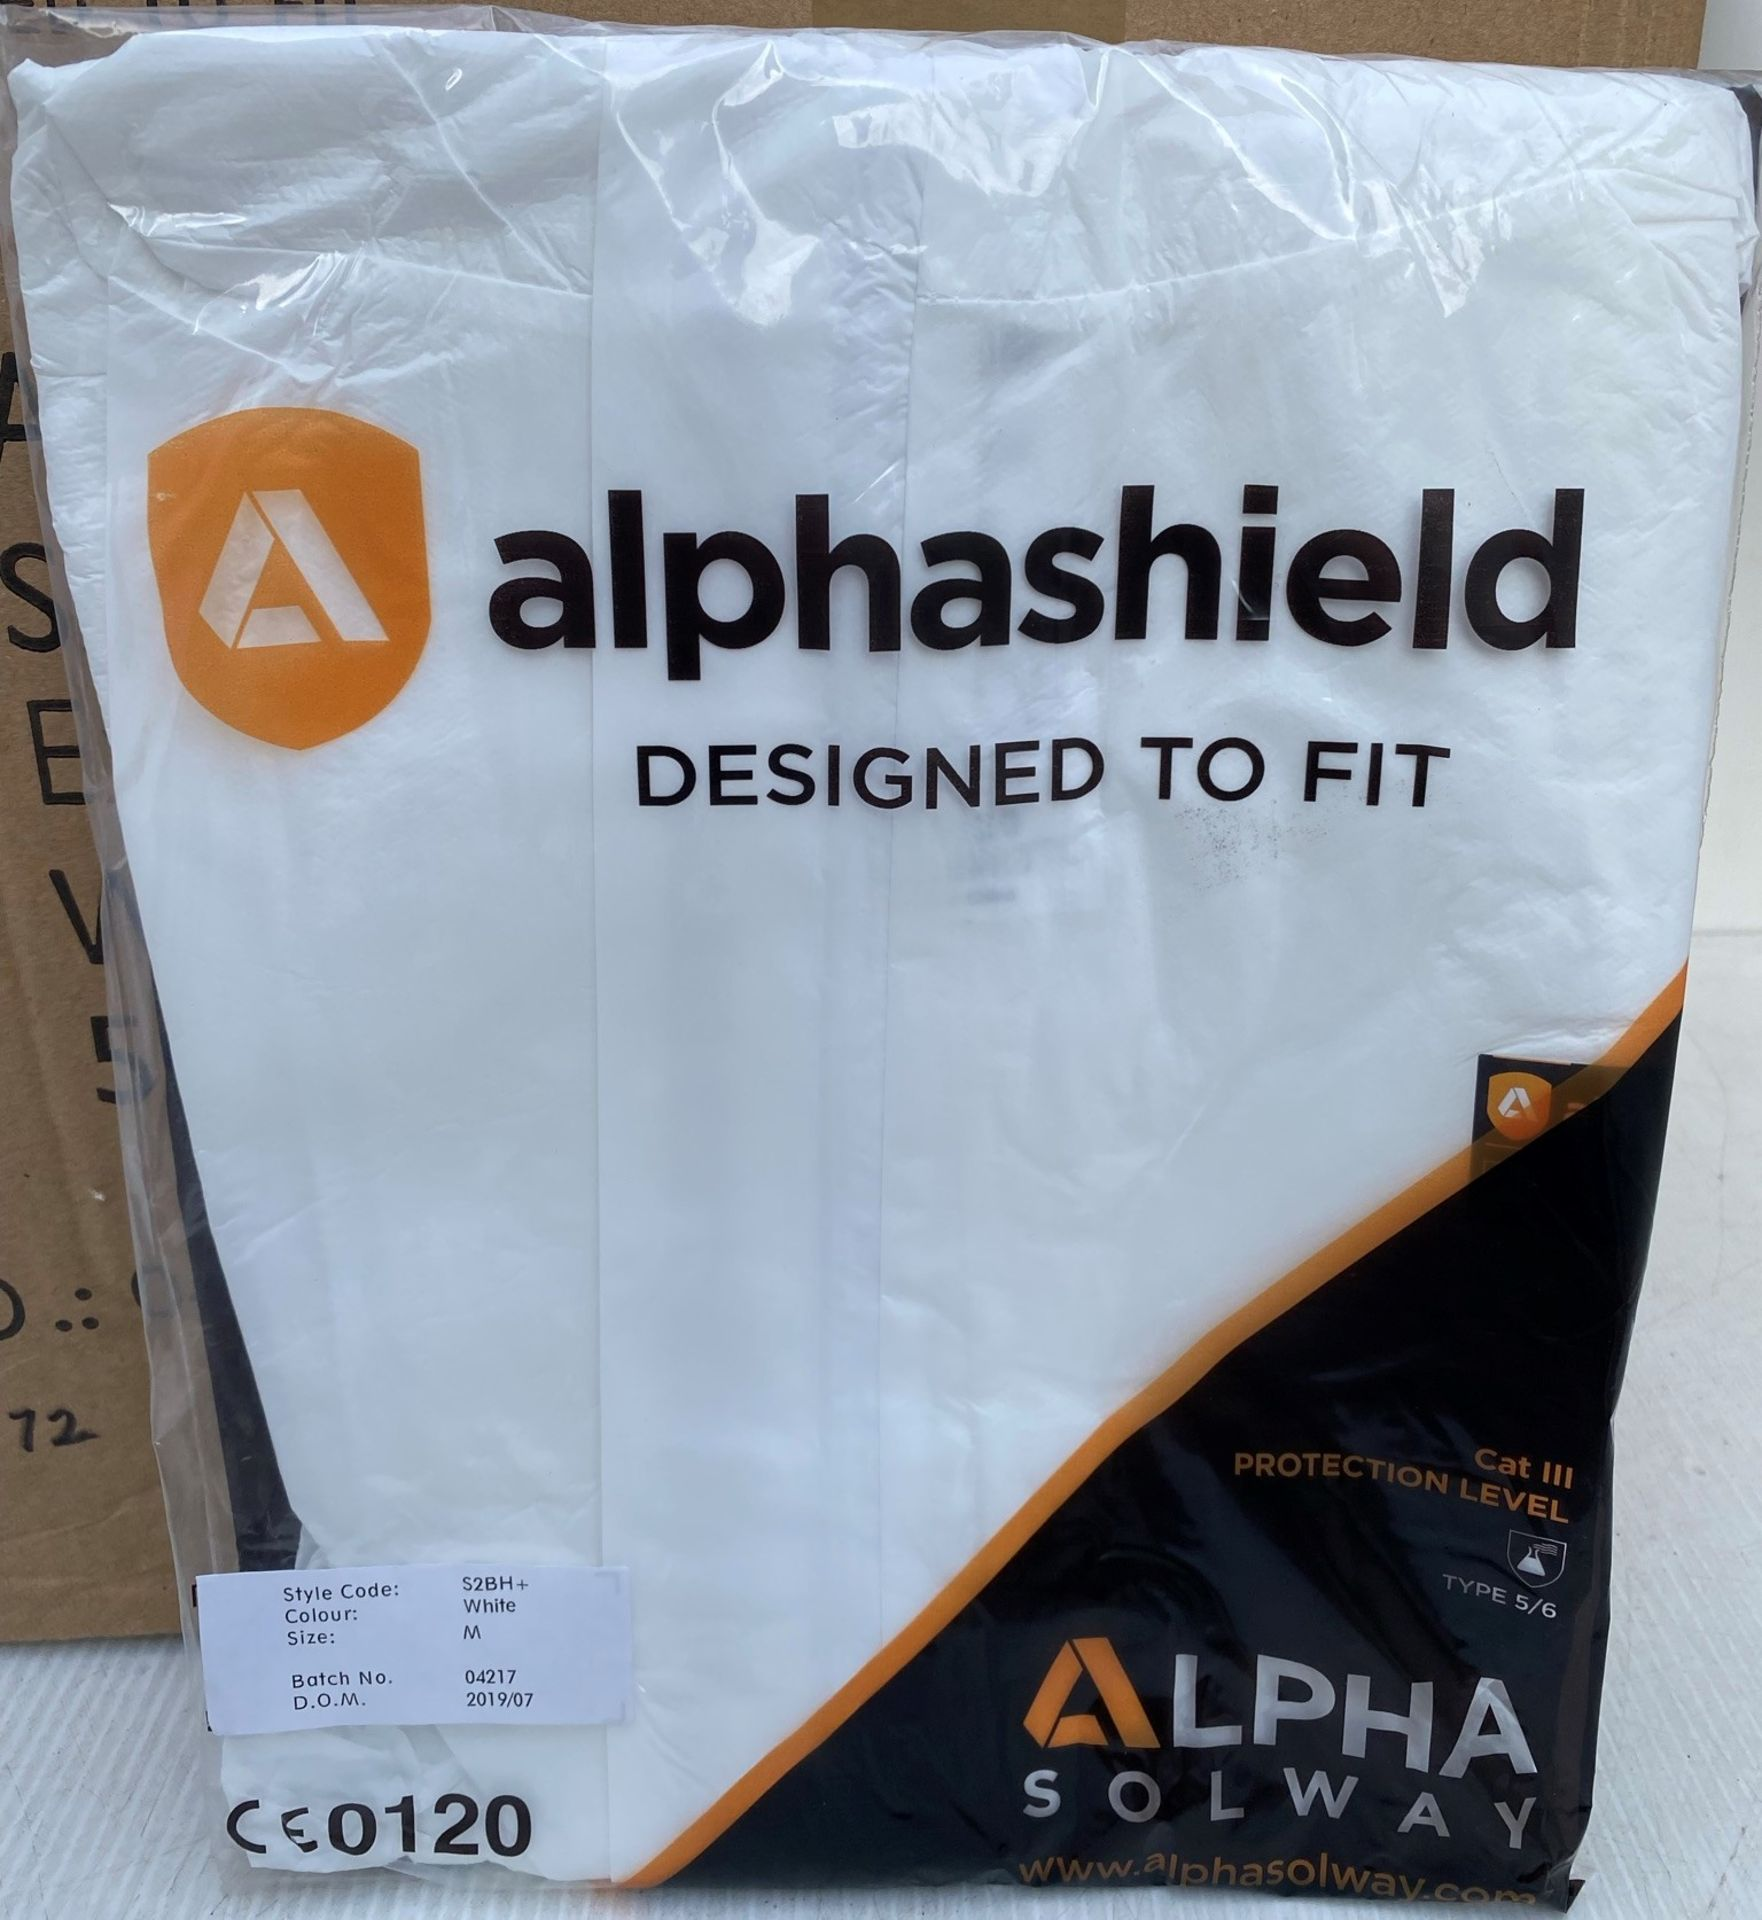 50 x Alpha Solway - Alphashield 2000+ protective S2BH+ white oversuits - Assorted sizes Medium,